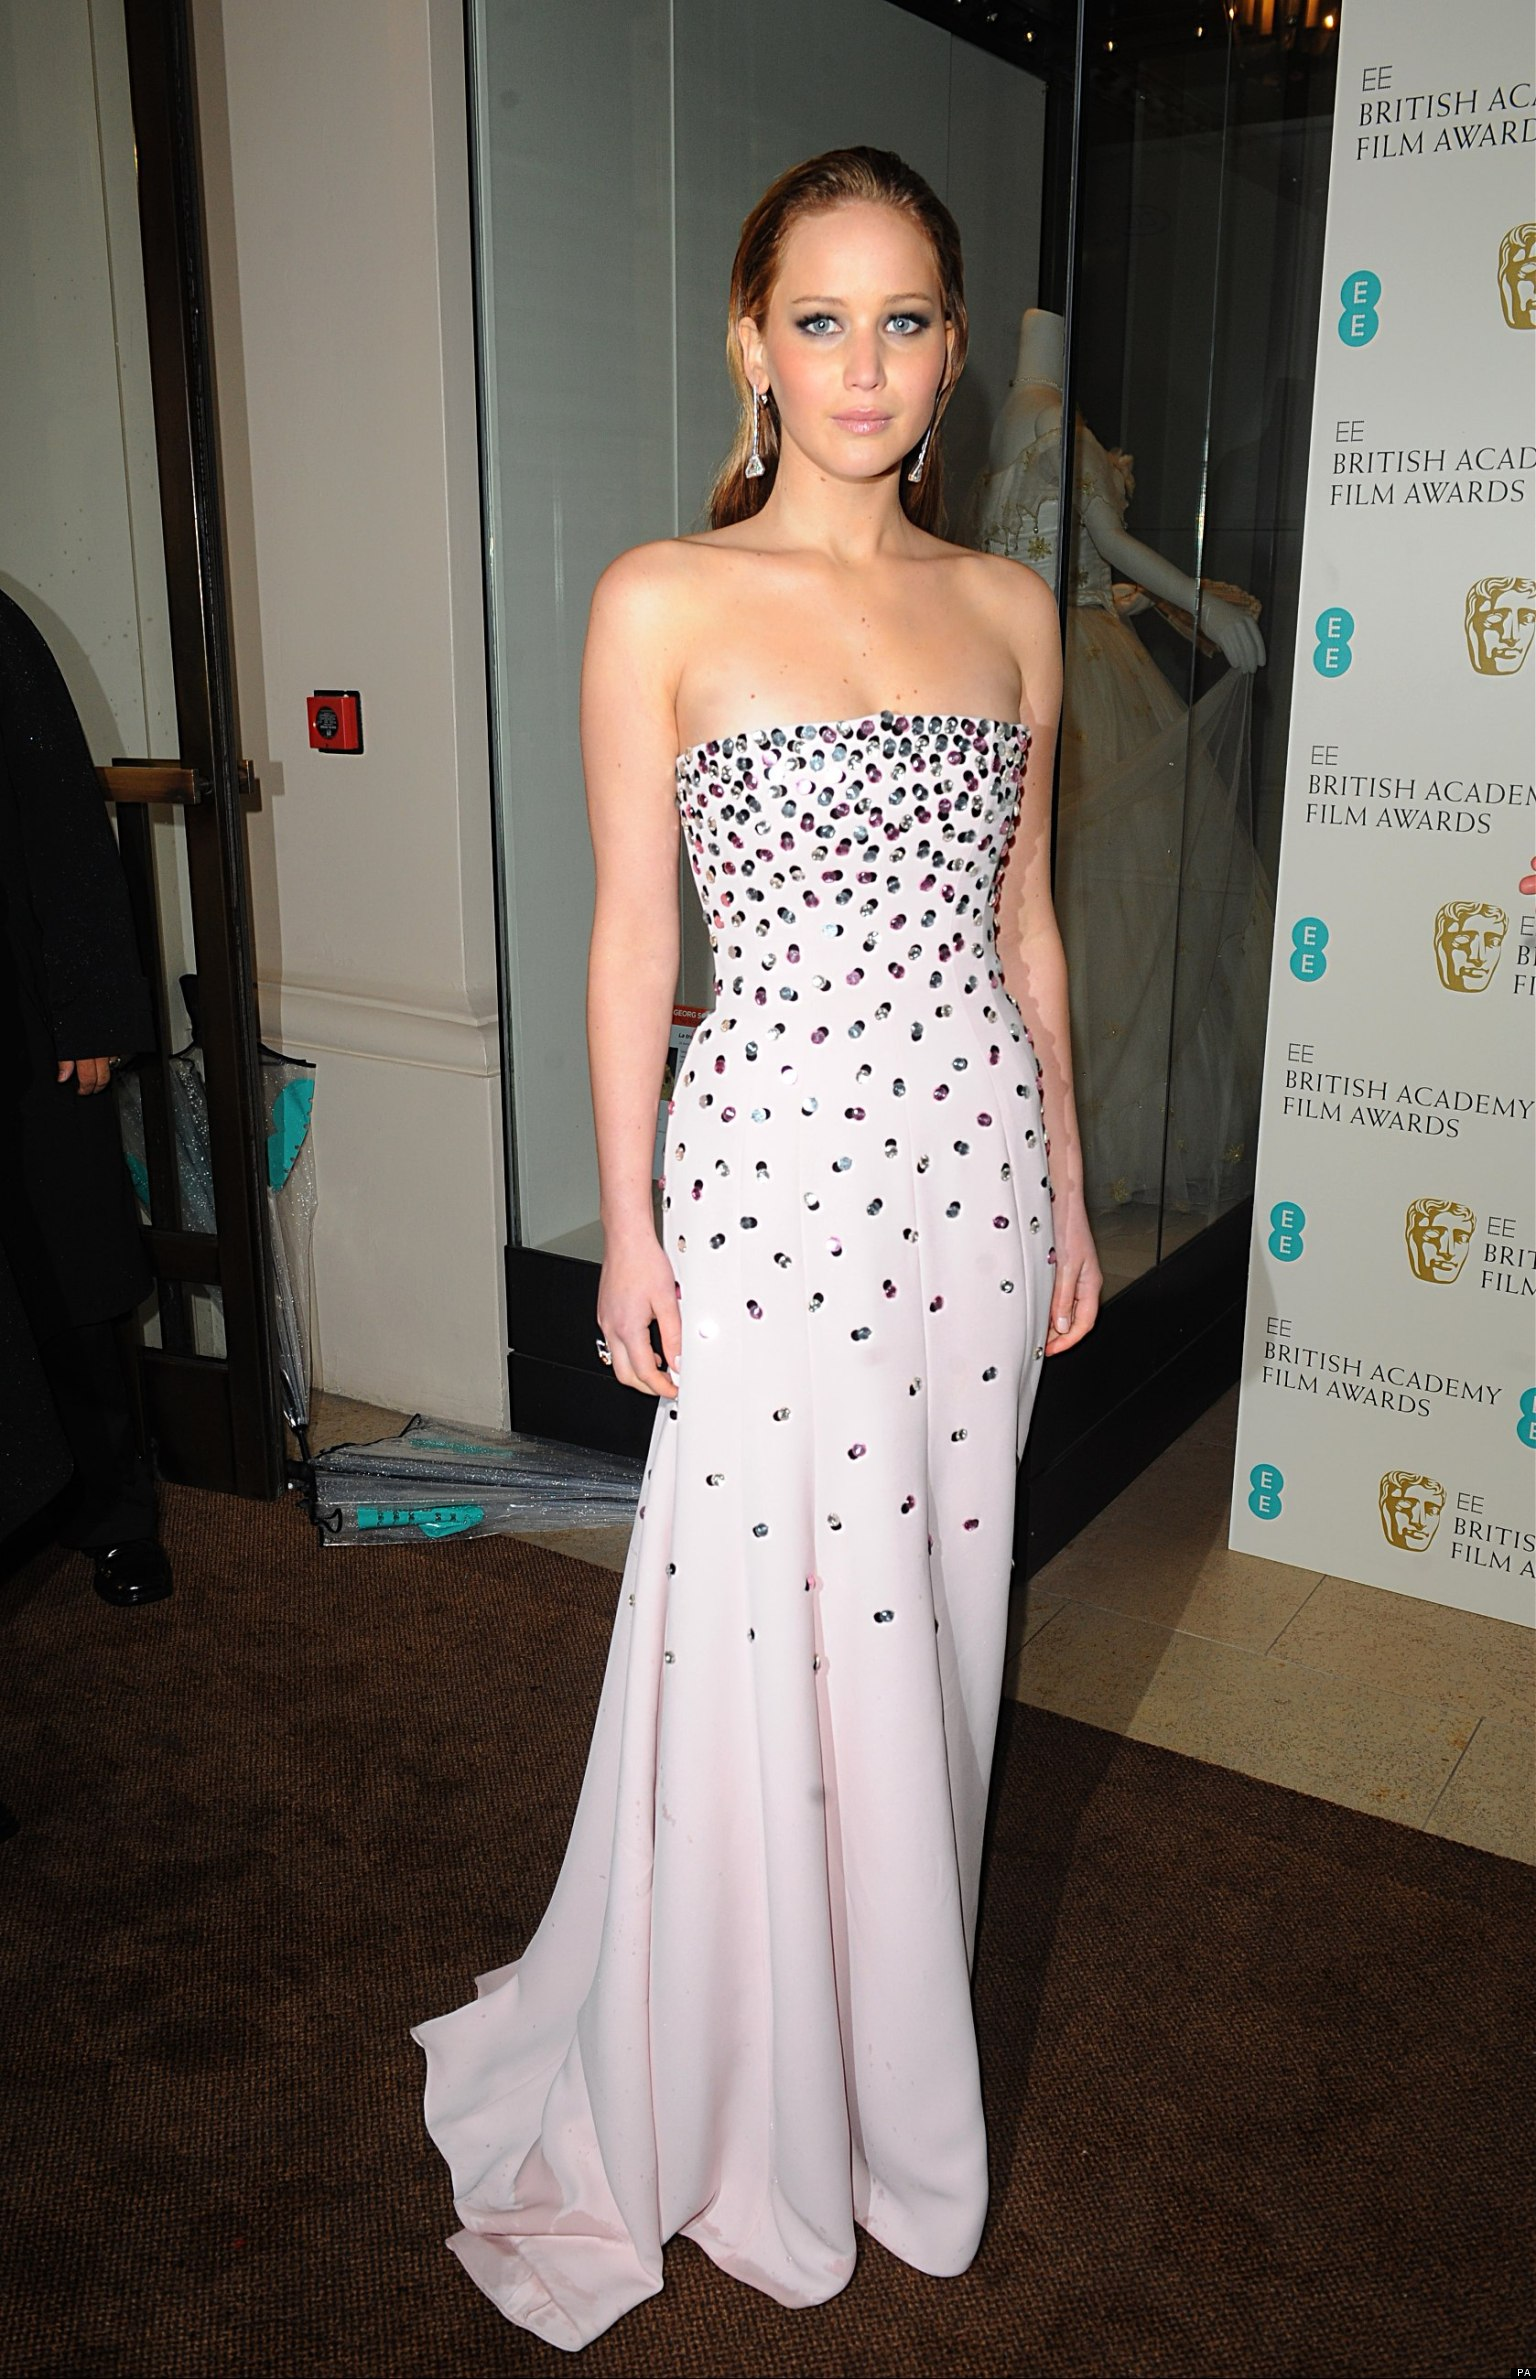 Baftas 2013 Anne Hathaway And Jennifer Lawrence Bring